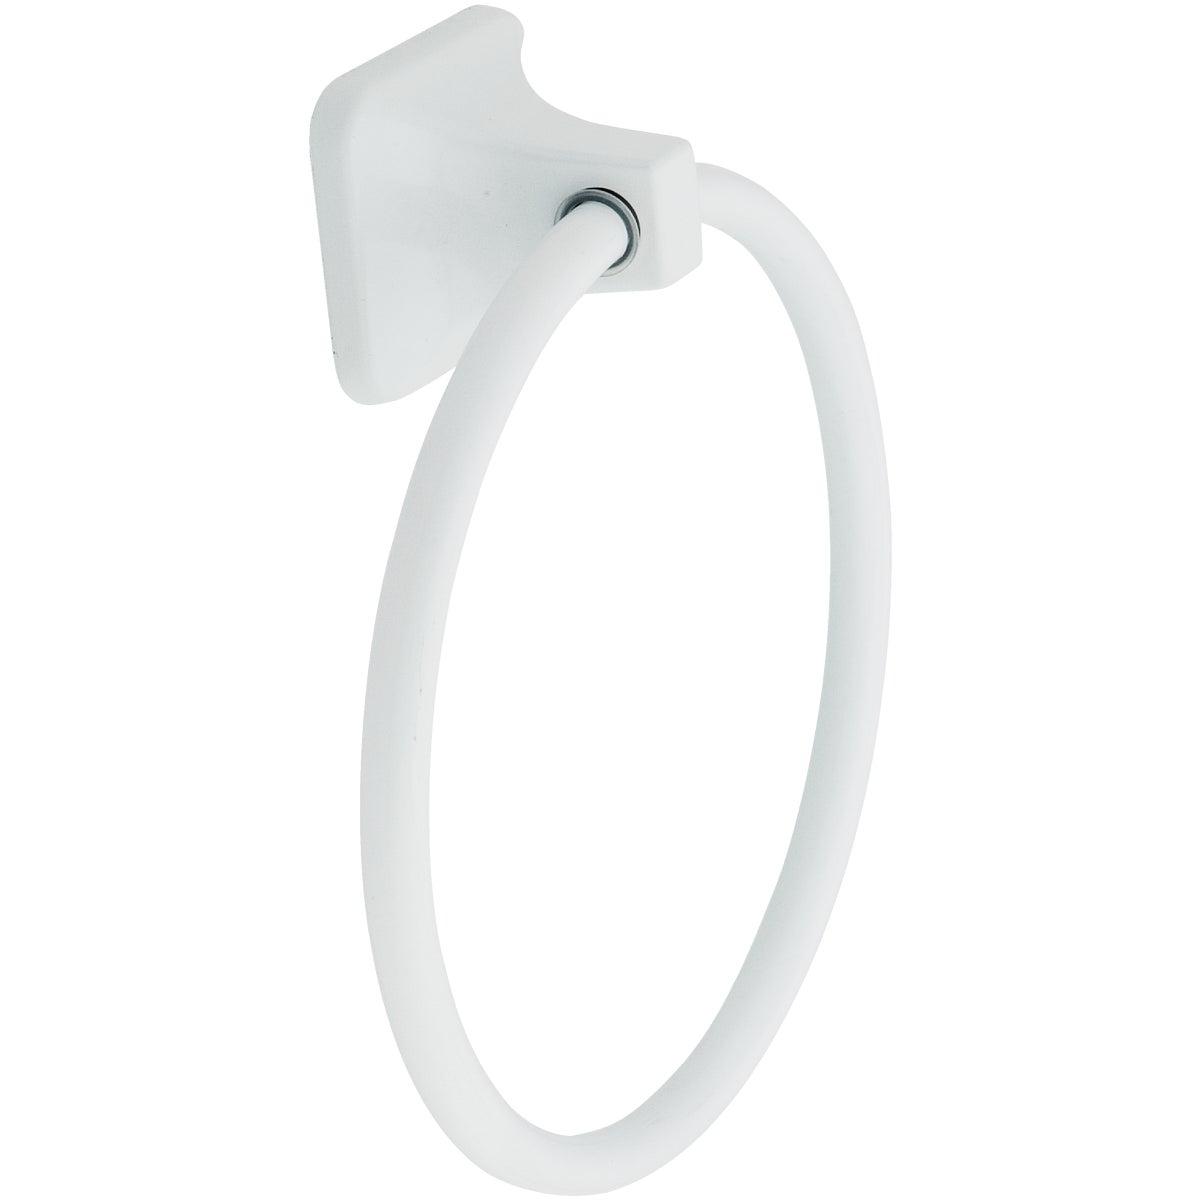 WHITE TOWEL RING - 409579 by Do it Best